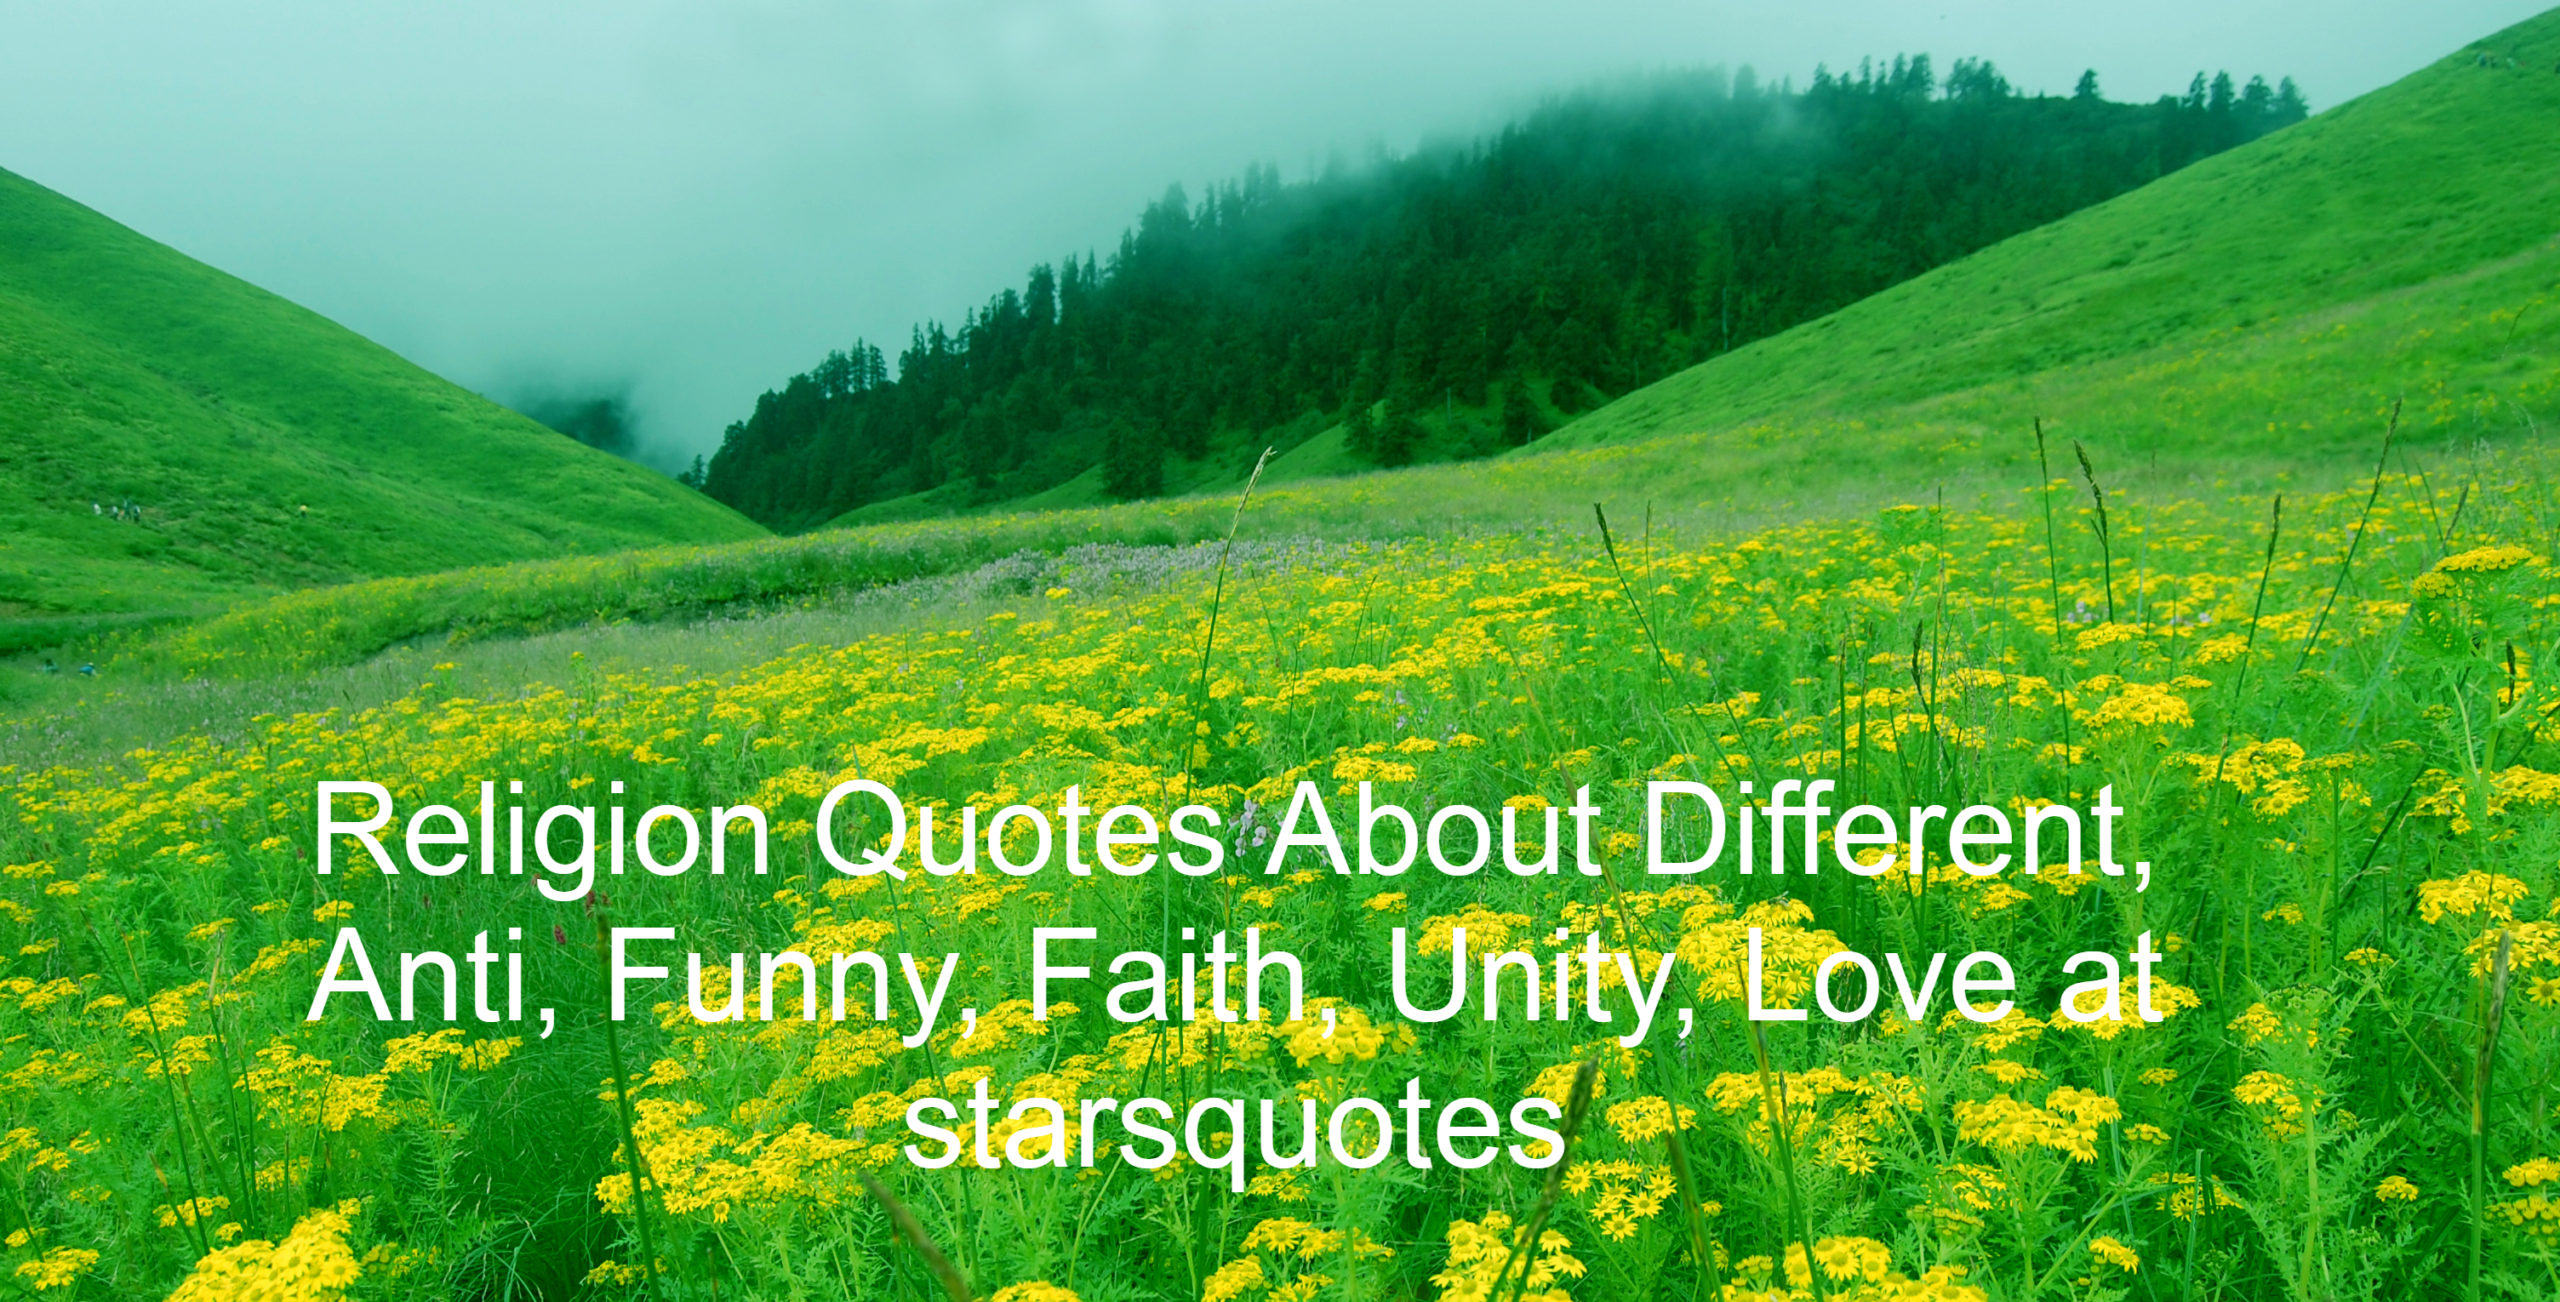 Religion Quotes About Different, Anti, Funny, Faith, Unity, Love at starsquotes